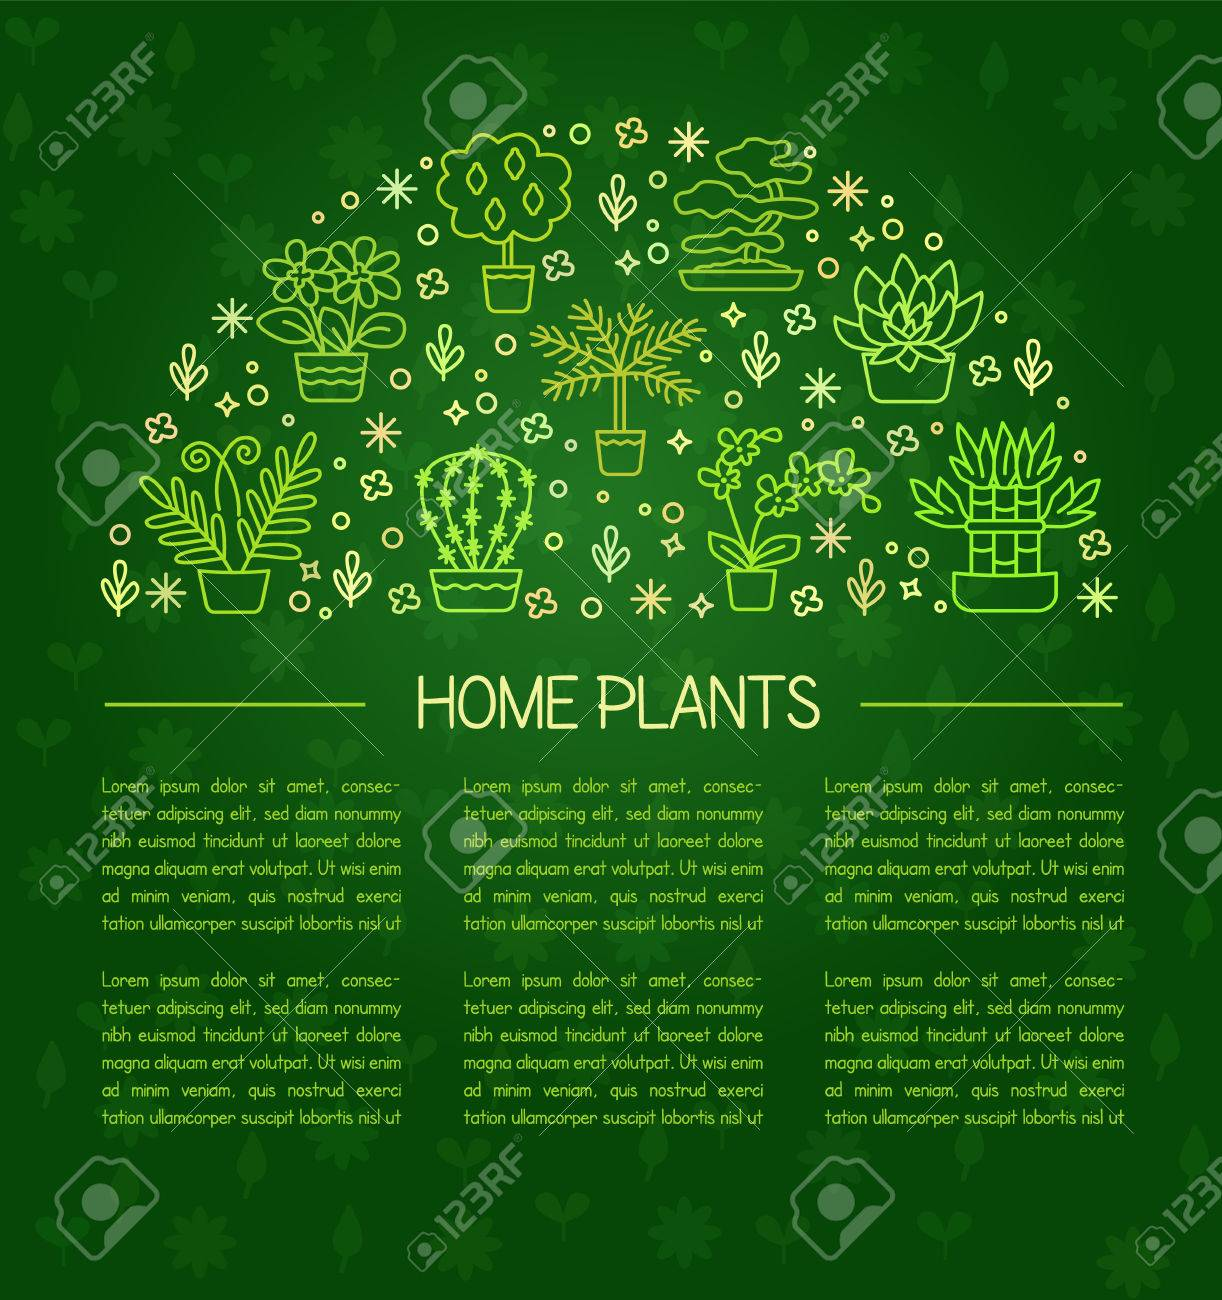 House Plants Concept For Garden Center, Flower U0026 Florist Shop. Vector  Rounded Illustration From